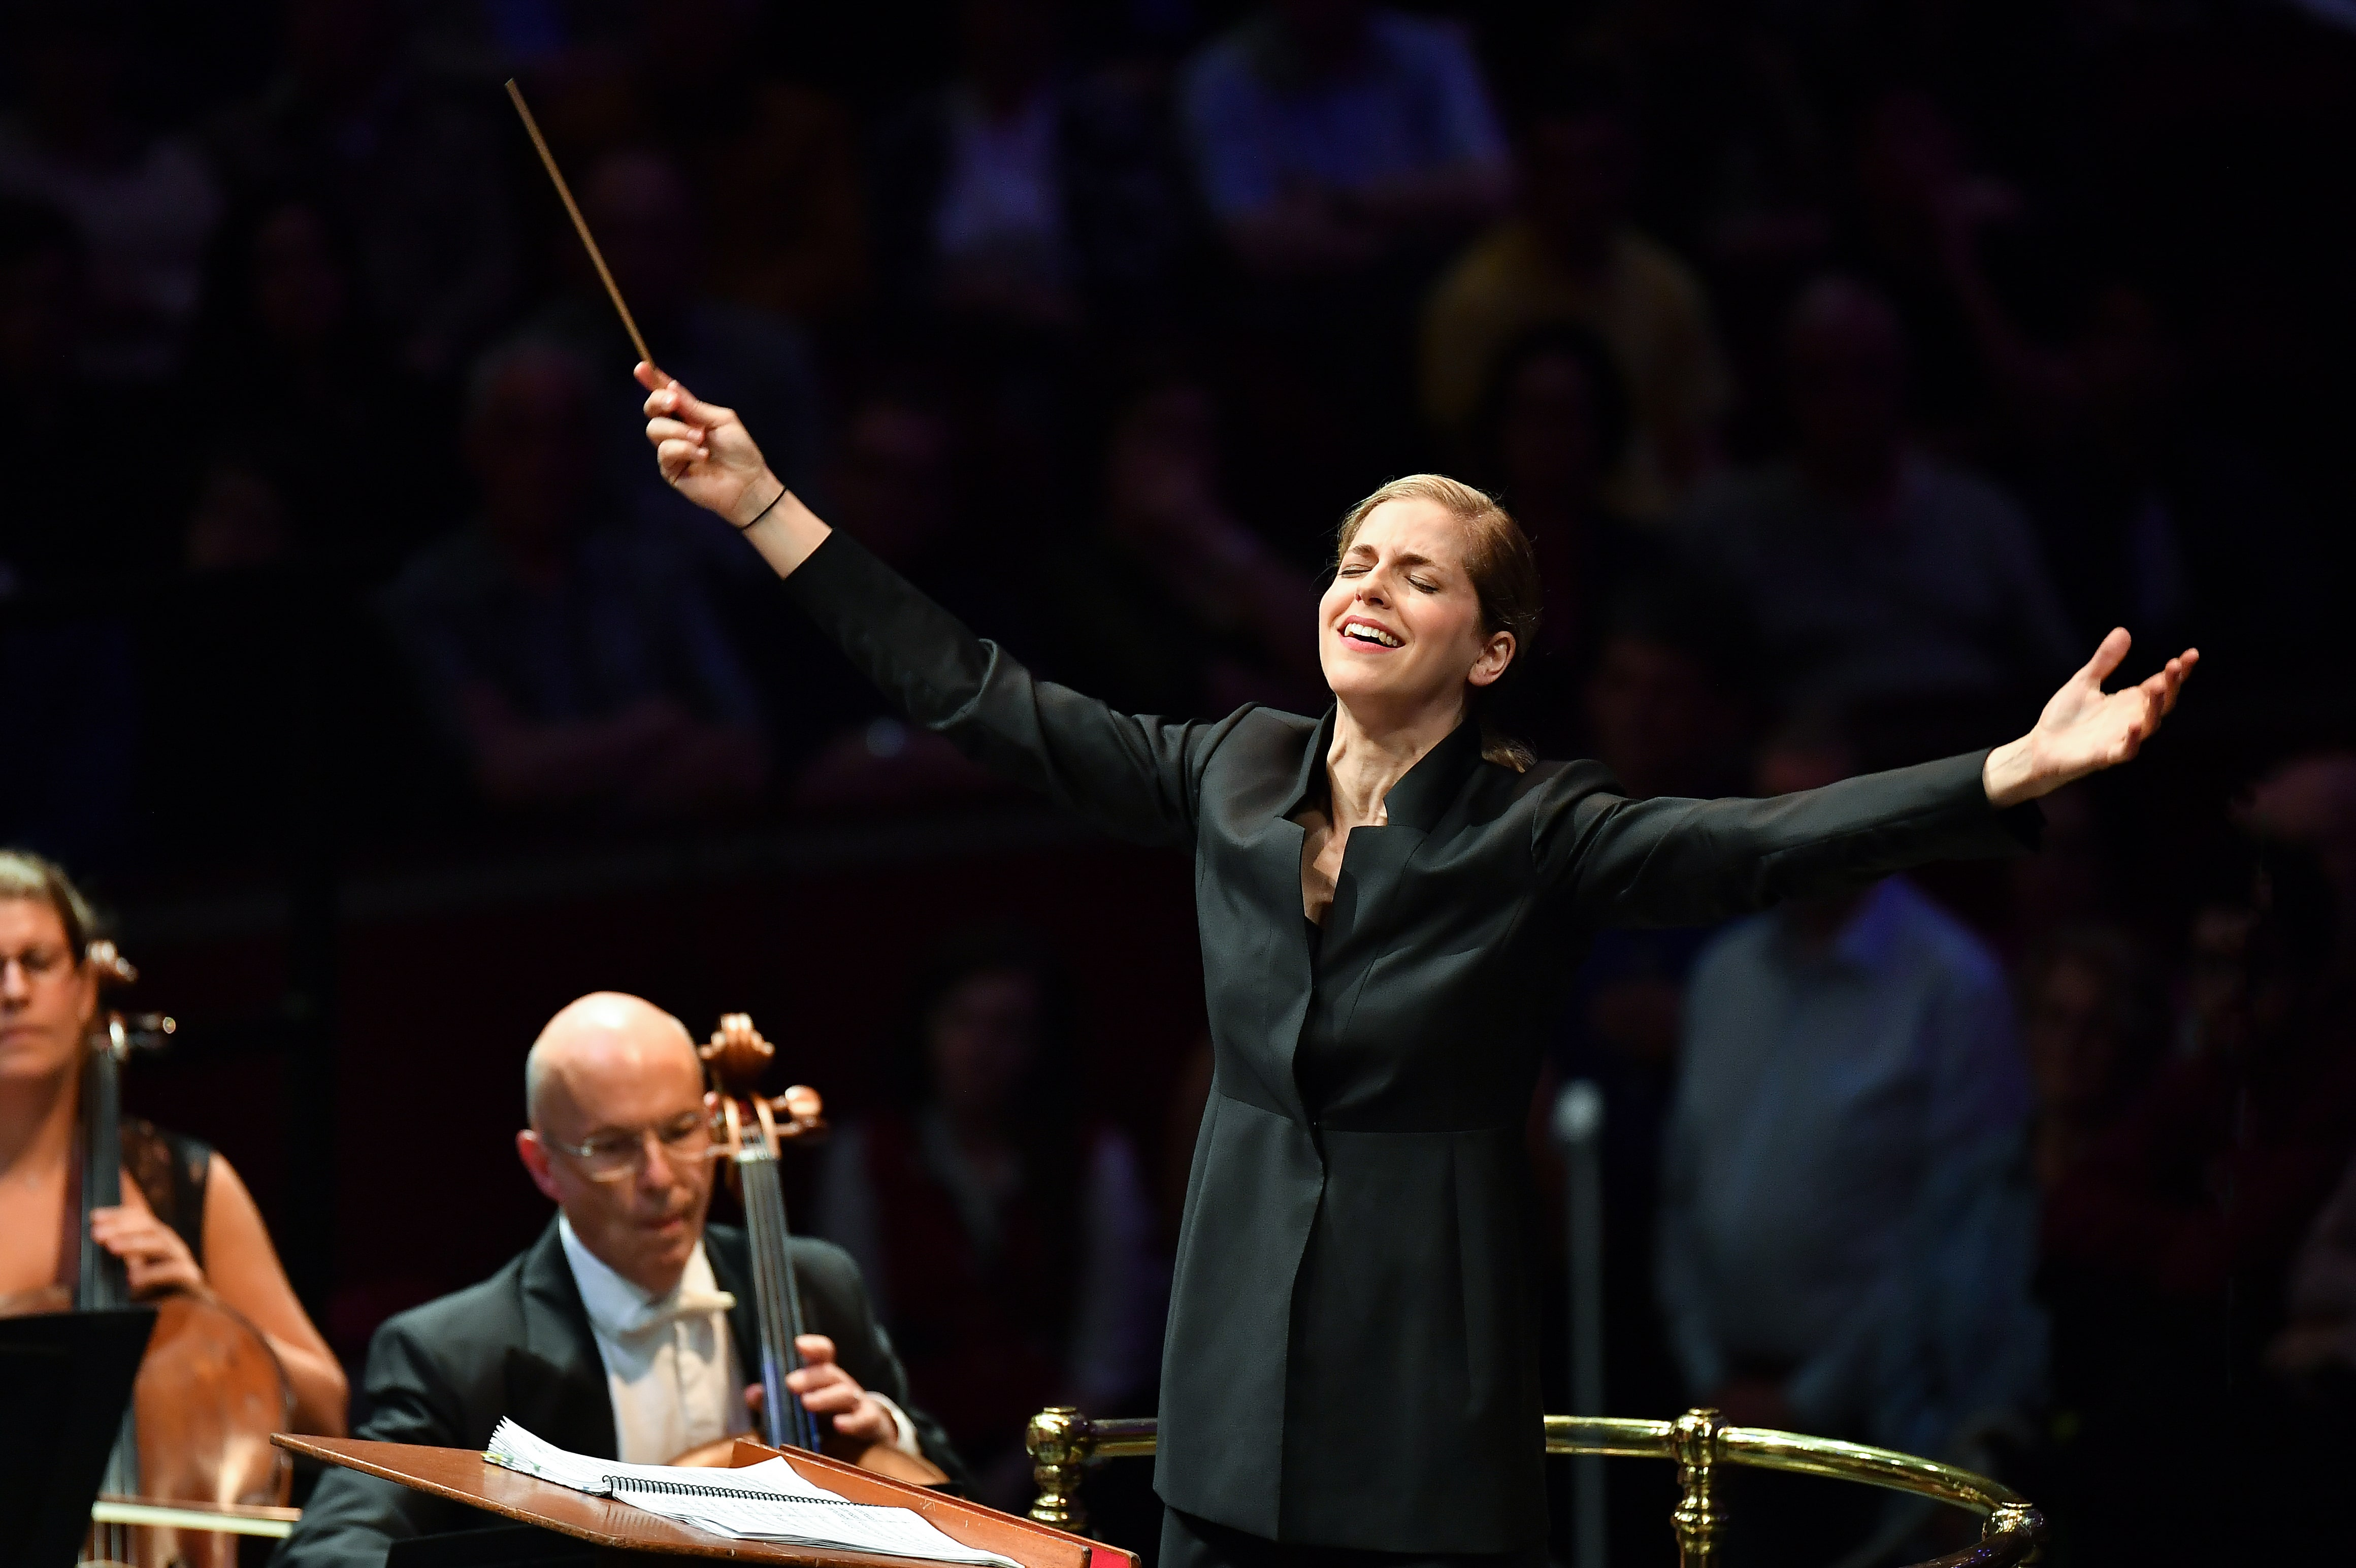 Conductor Karina chosen by LPO